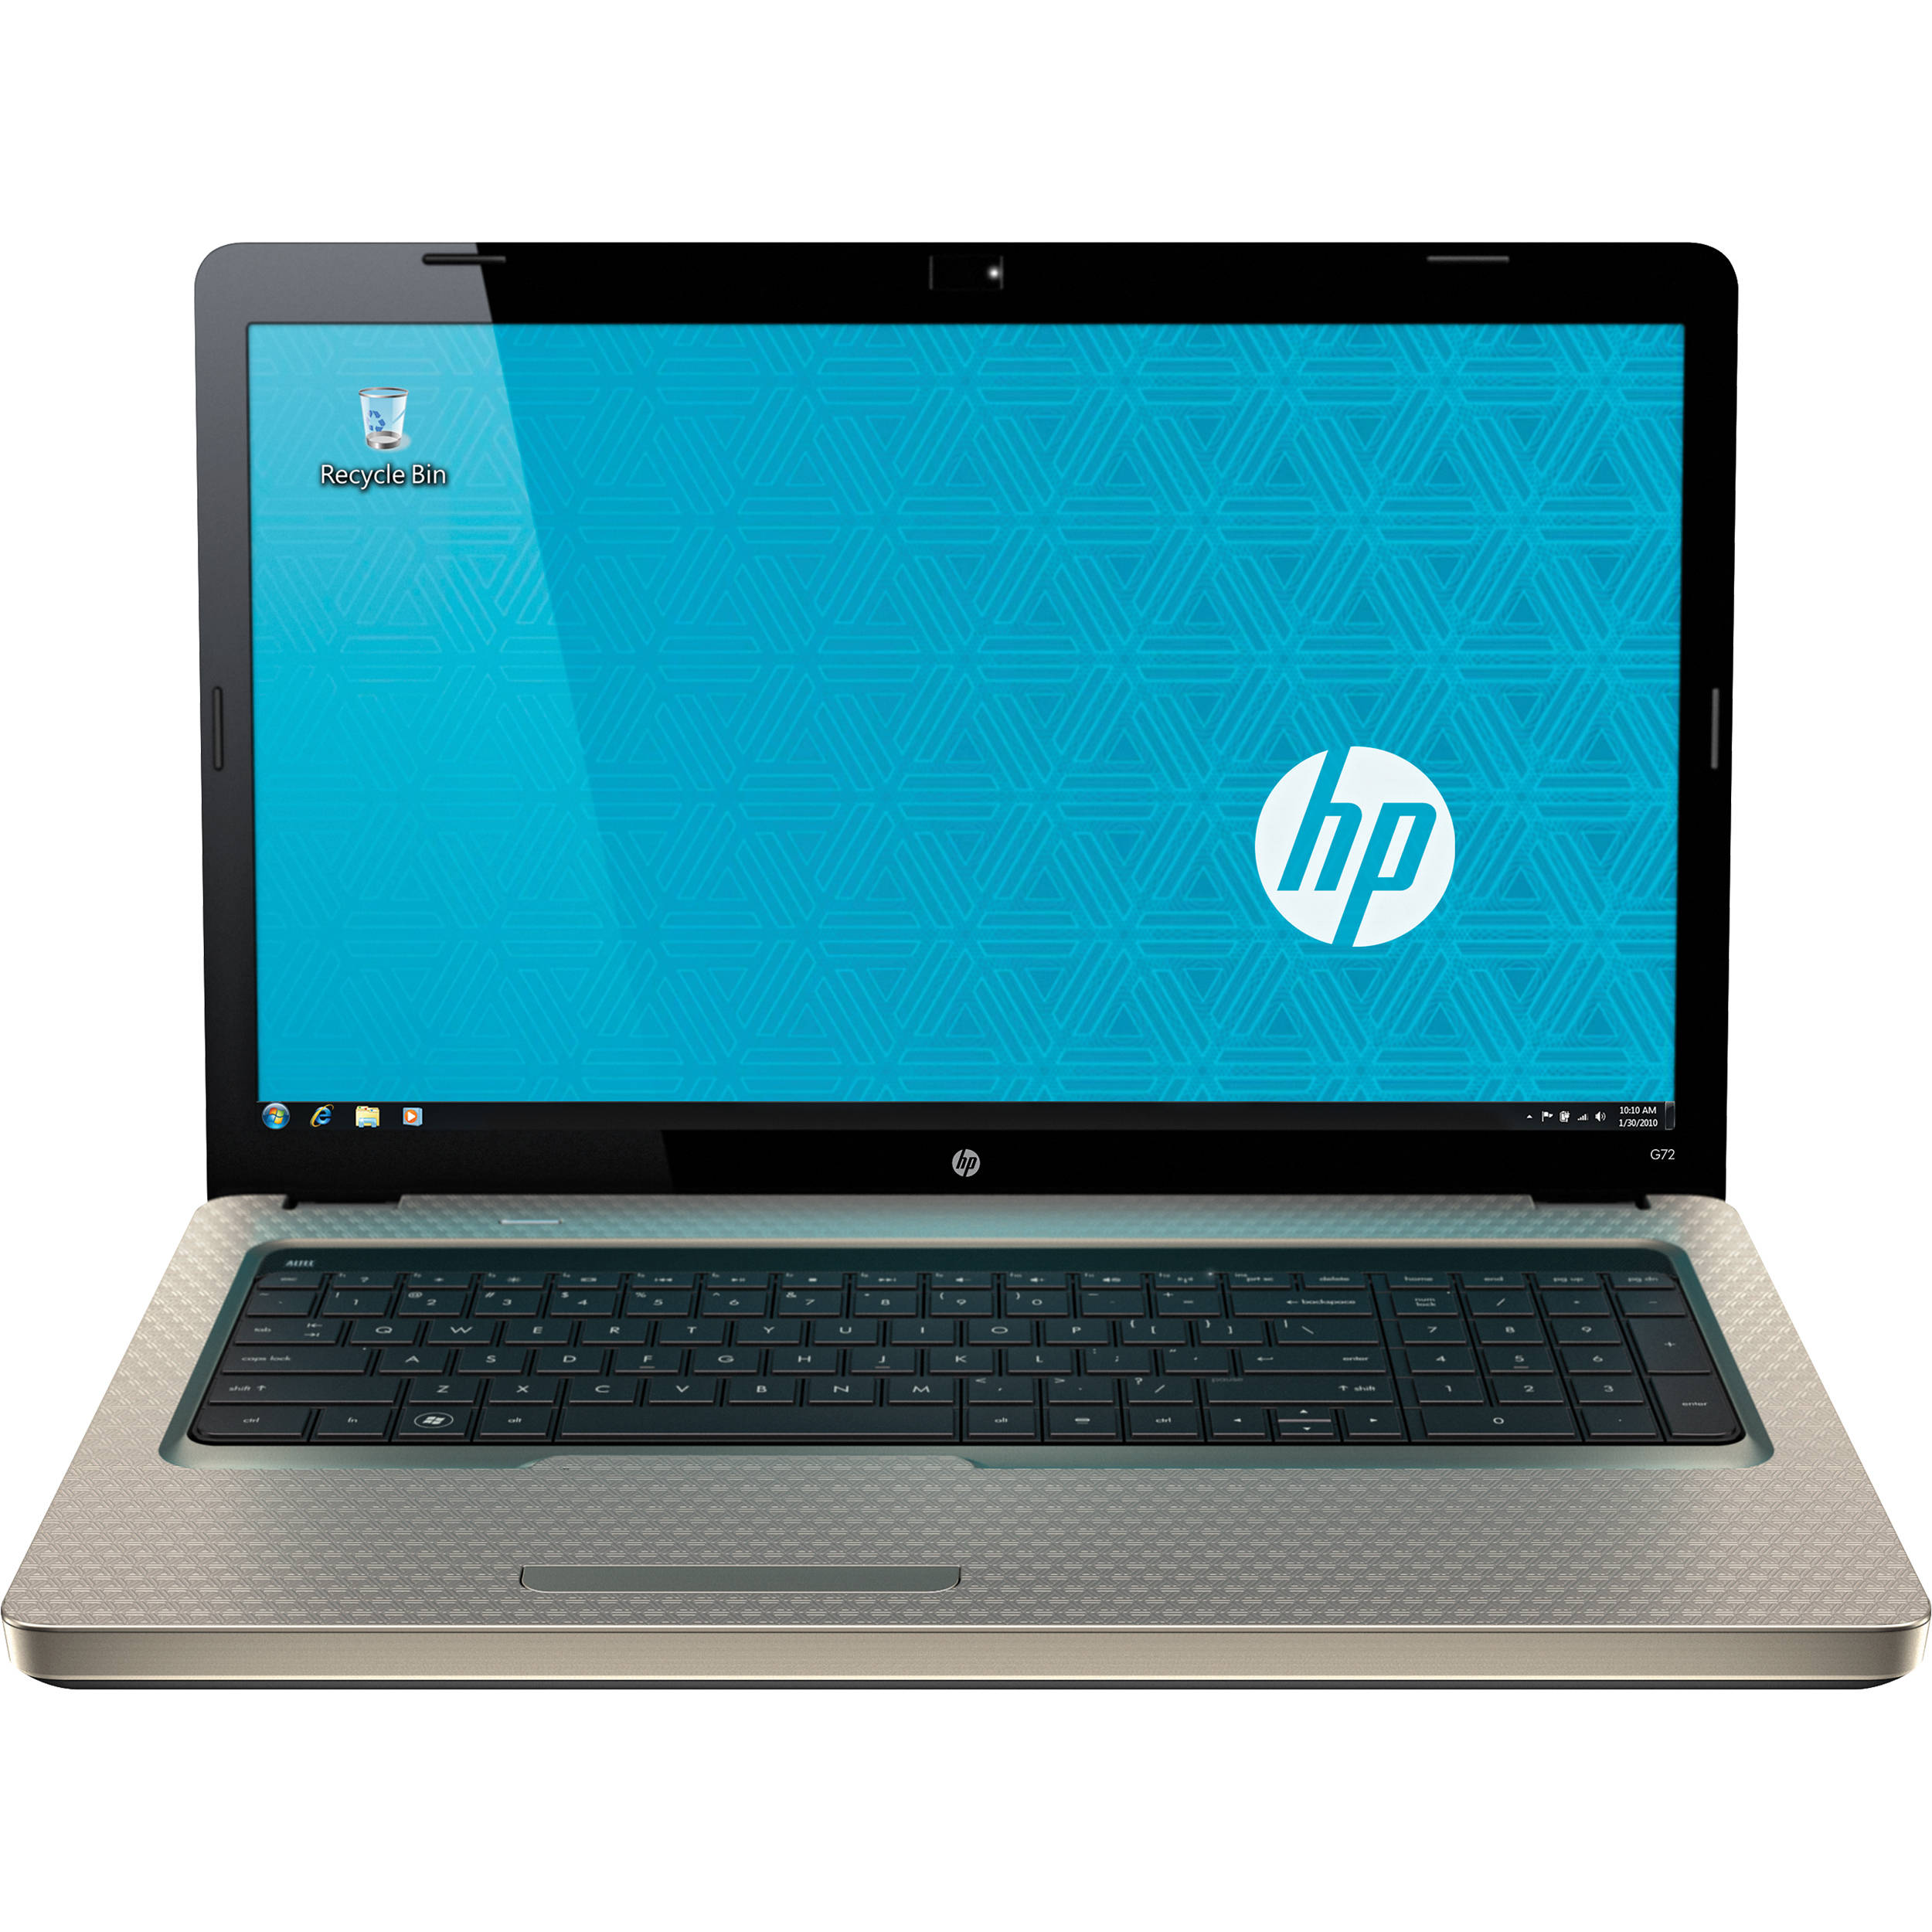 HP G72-260US NOTEBOOK DRIVER WINDOWS XP